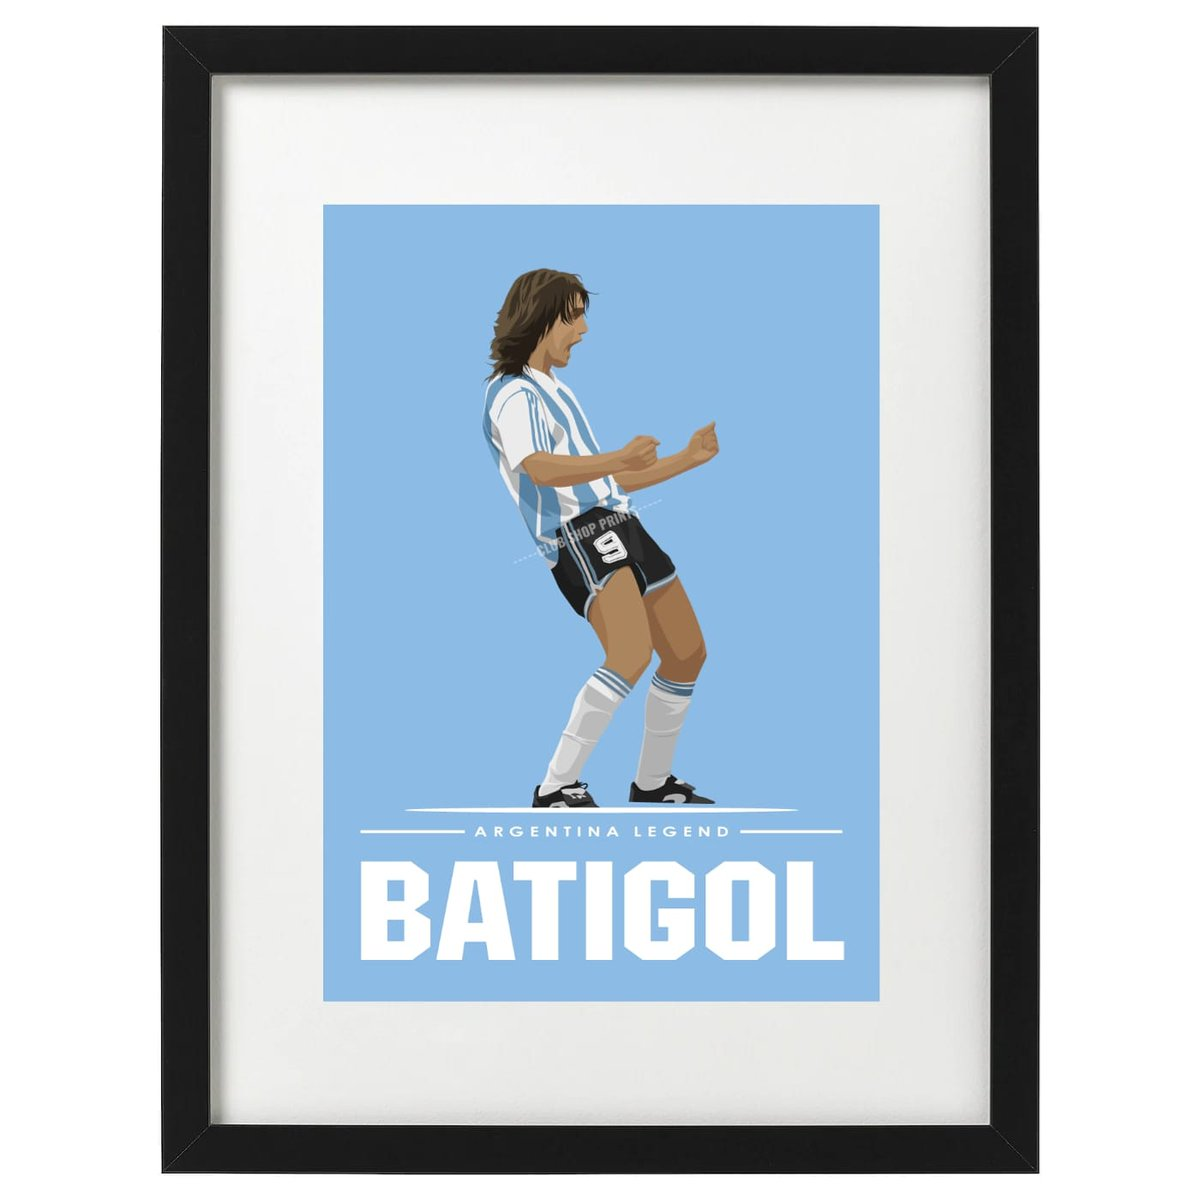 Gabriel Batistuta and Ronaldo art prints available now. Free UK delivery. Link in bio 👆 #footballart #etsy #etsyshop #batistuta #gabrielbatistuta #batigol #r9 #ronaldo9 #ronaldo #ronaldobrazil #Maradona #pele #Argentina #Brazil https://t.co/oTqMou81dp